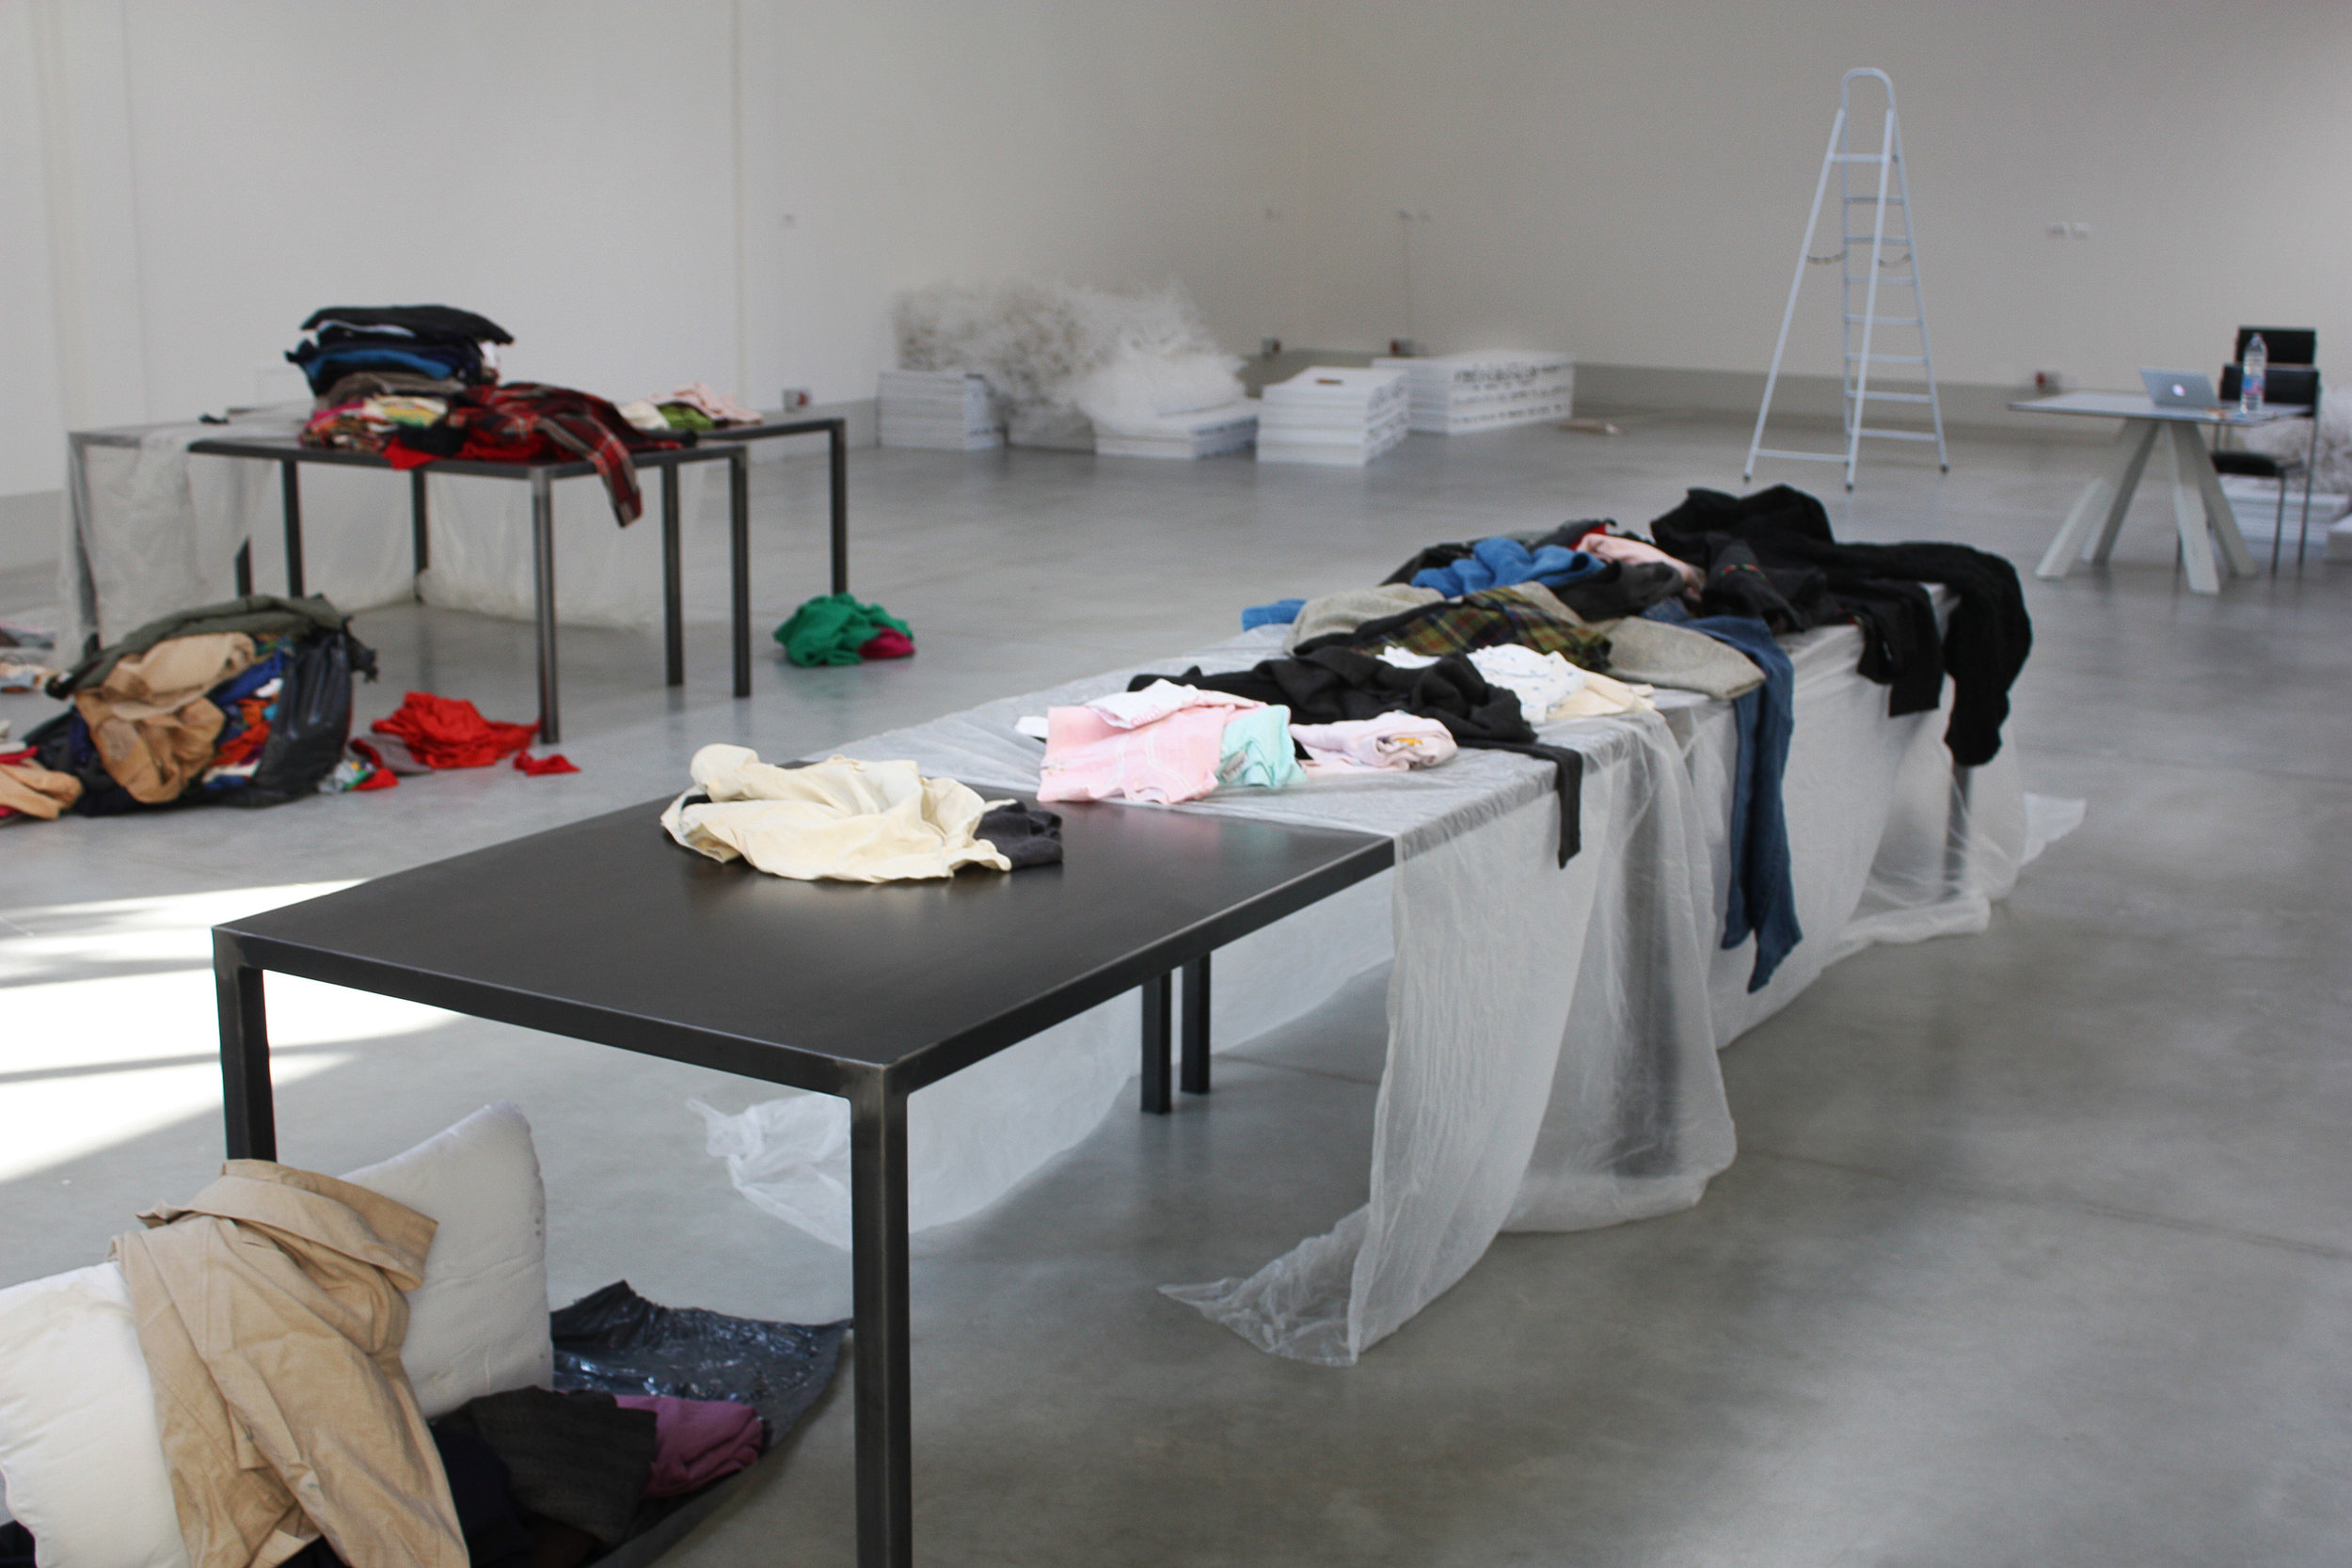 Luca Vanello's garments spread out in the workspace